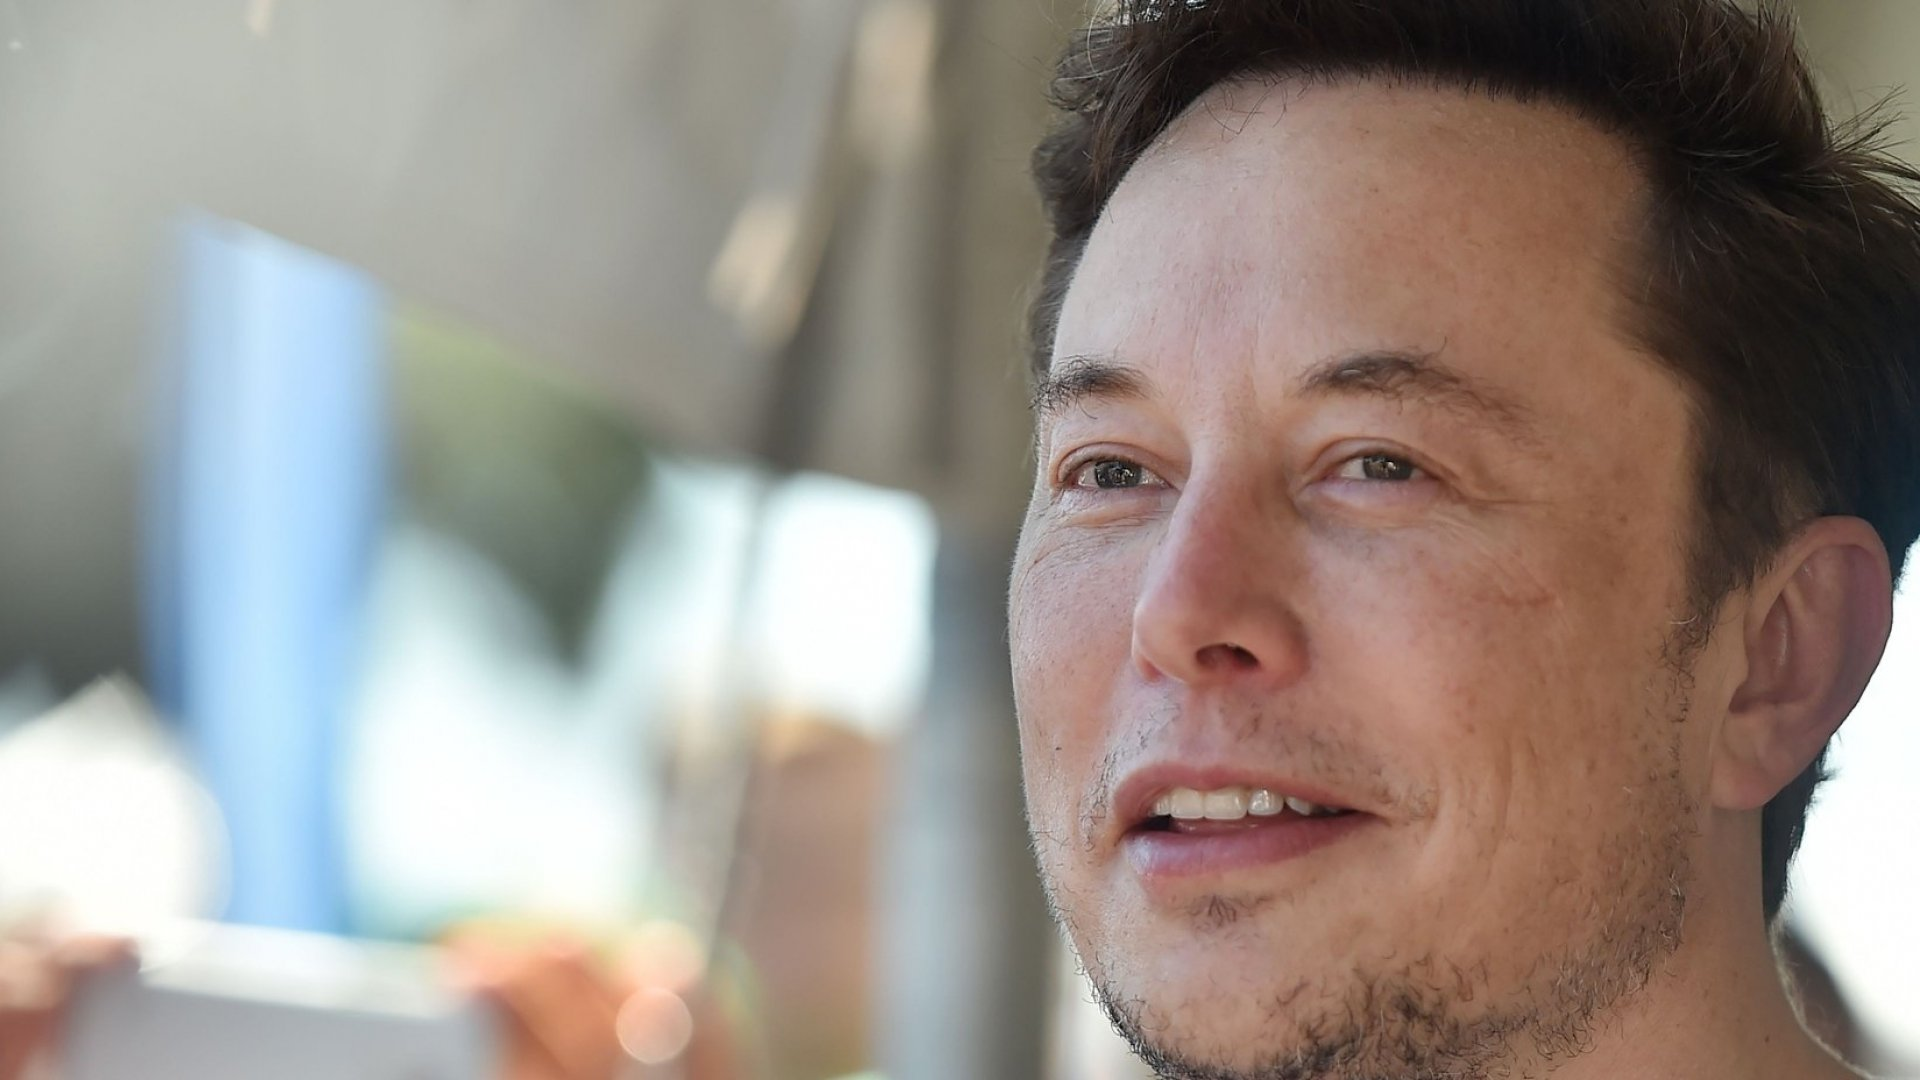 Tesla's Elon Musk Just Gave a $5 Billion Apology